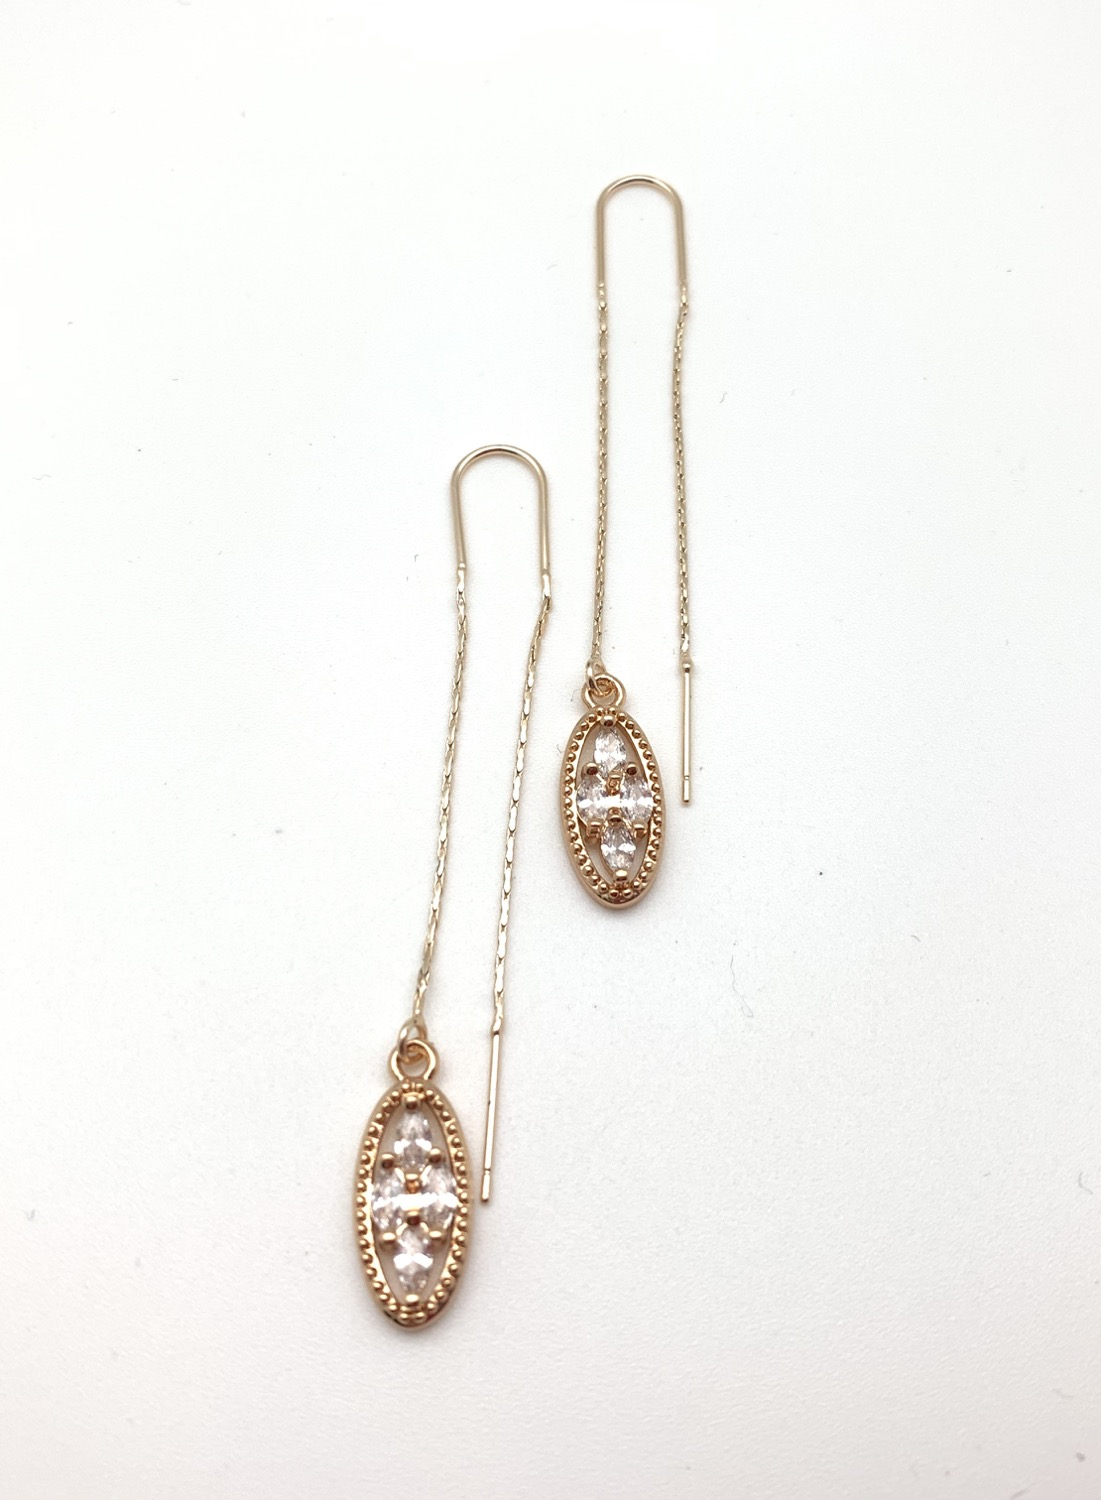 H130 Sparkling Threader Earrings